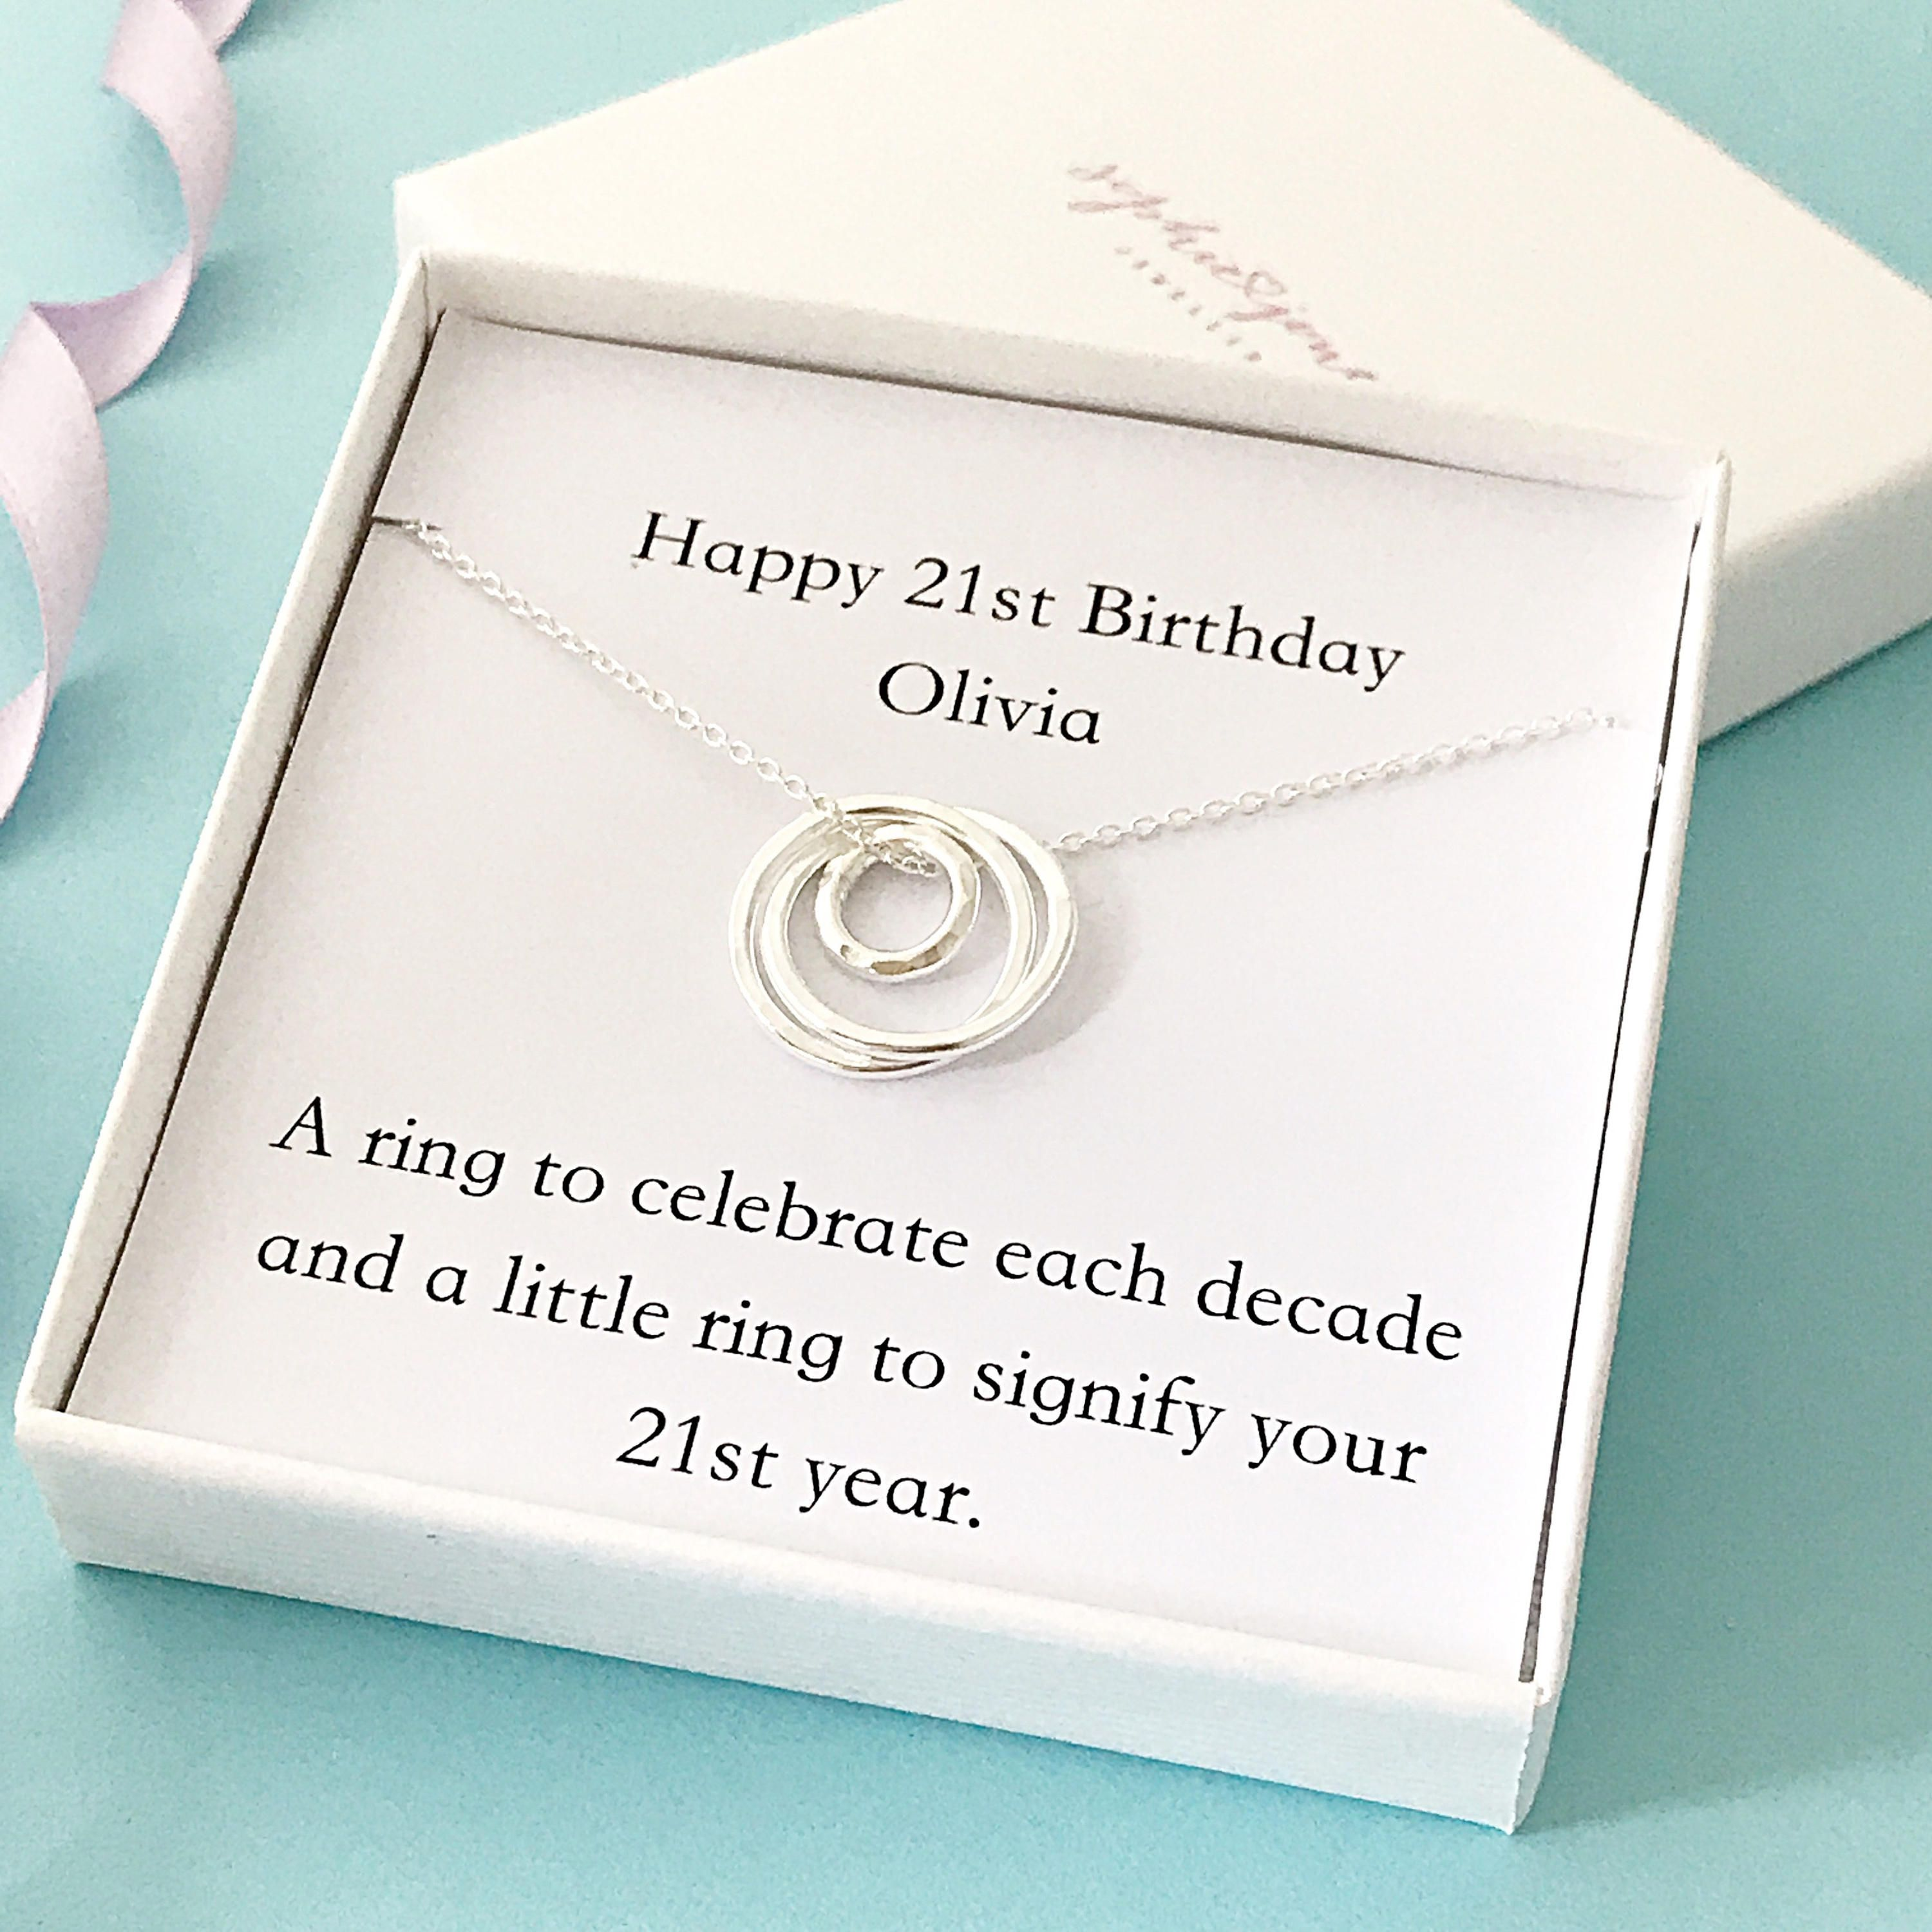 12+ 21st birthday jewelry gifts for daughter ideas in 2021